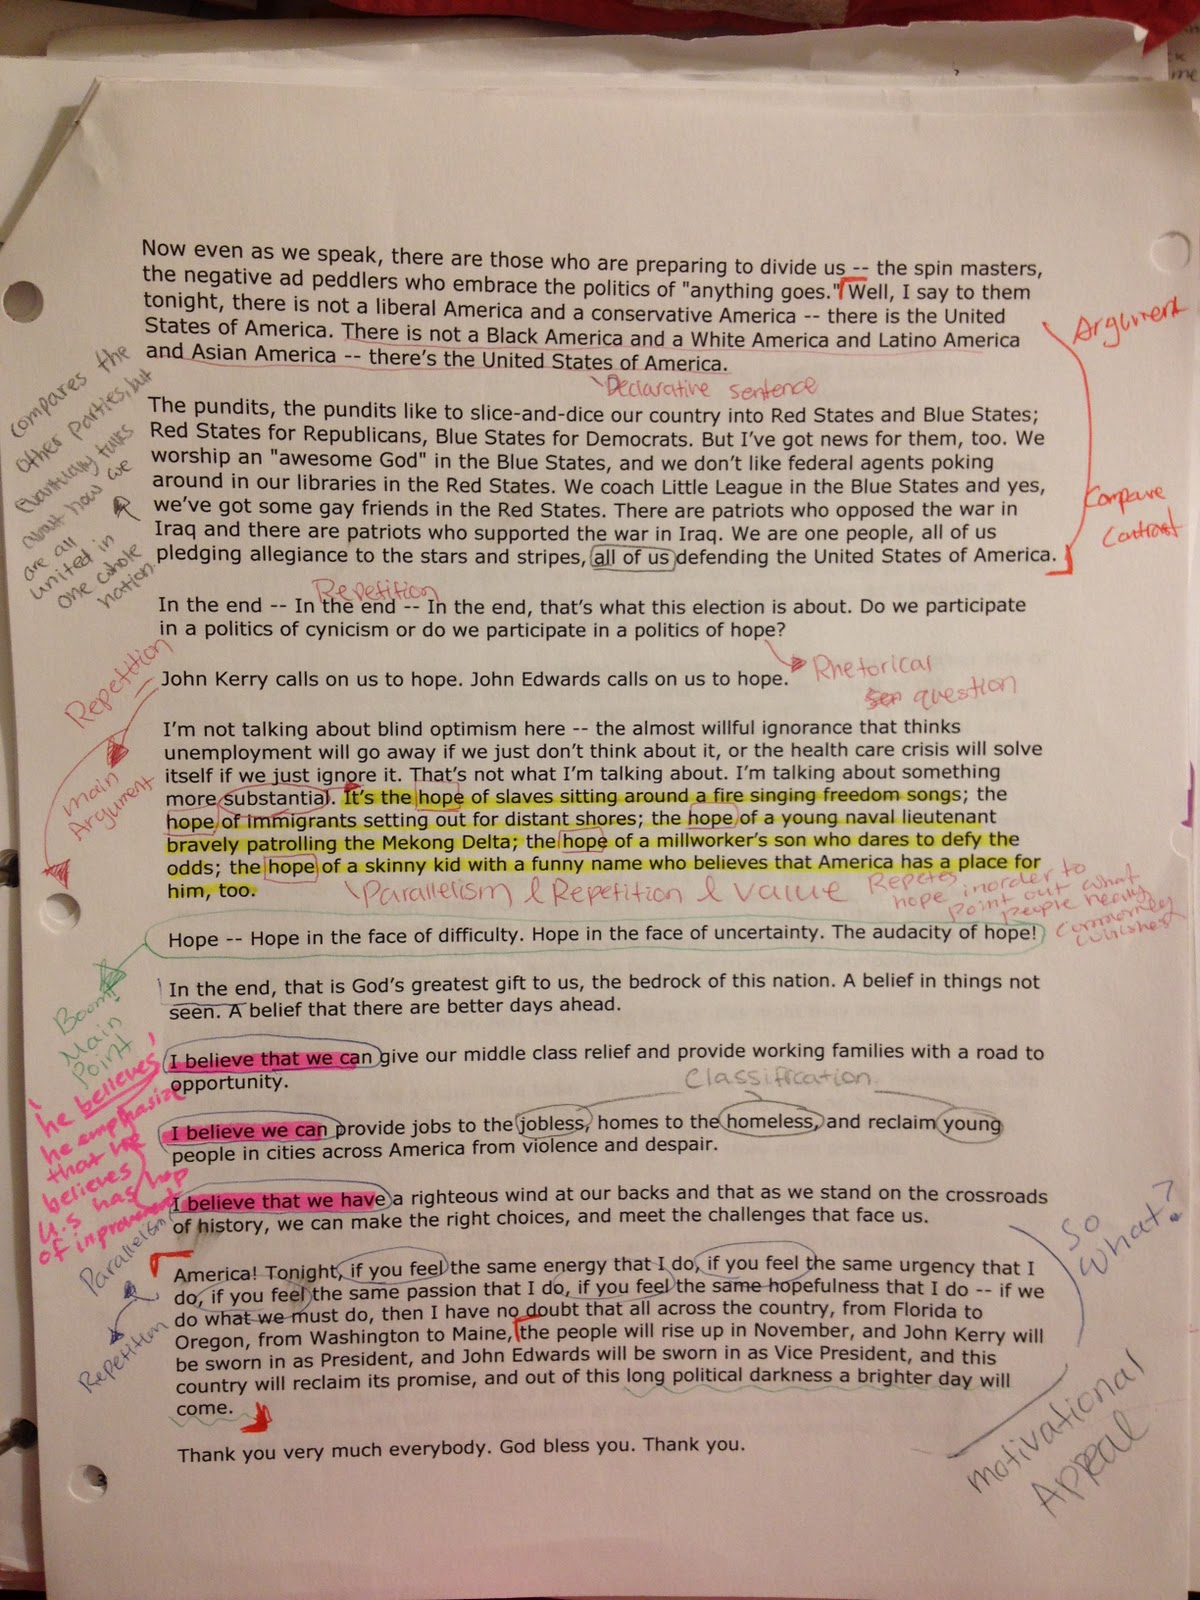 Here Is My Example Of How To Annotate! I Annotated The Speech Of Barack  Obama's Audacity Of Hope This Was Such A Great Text To Annotate Because  Obama